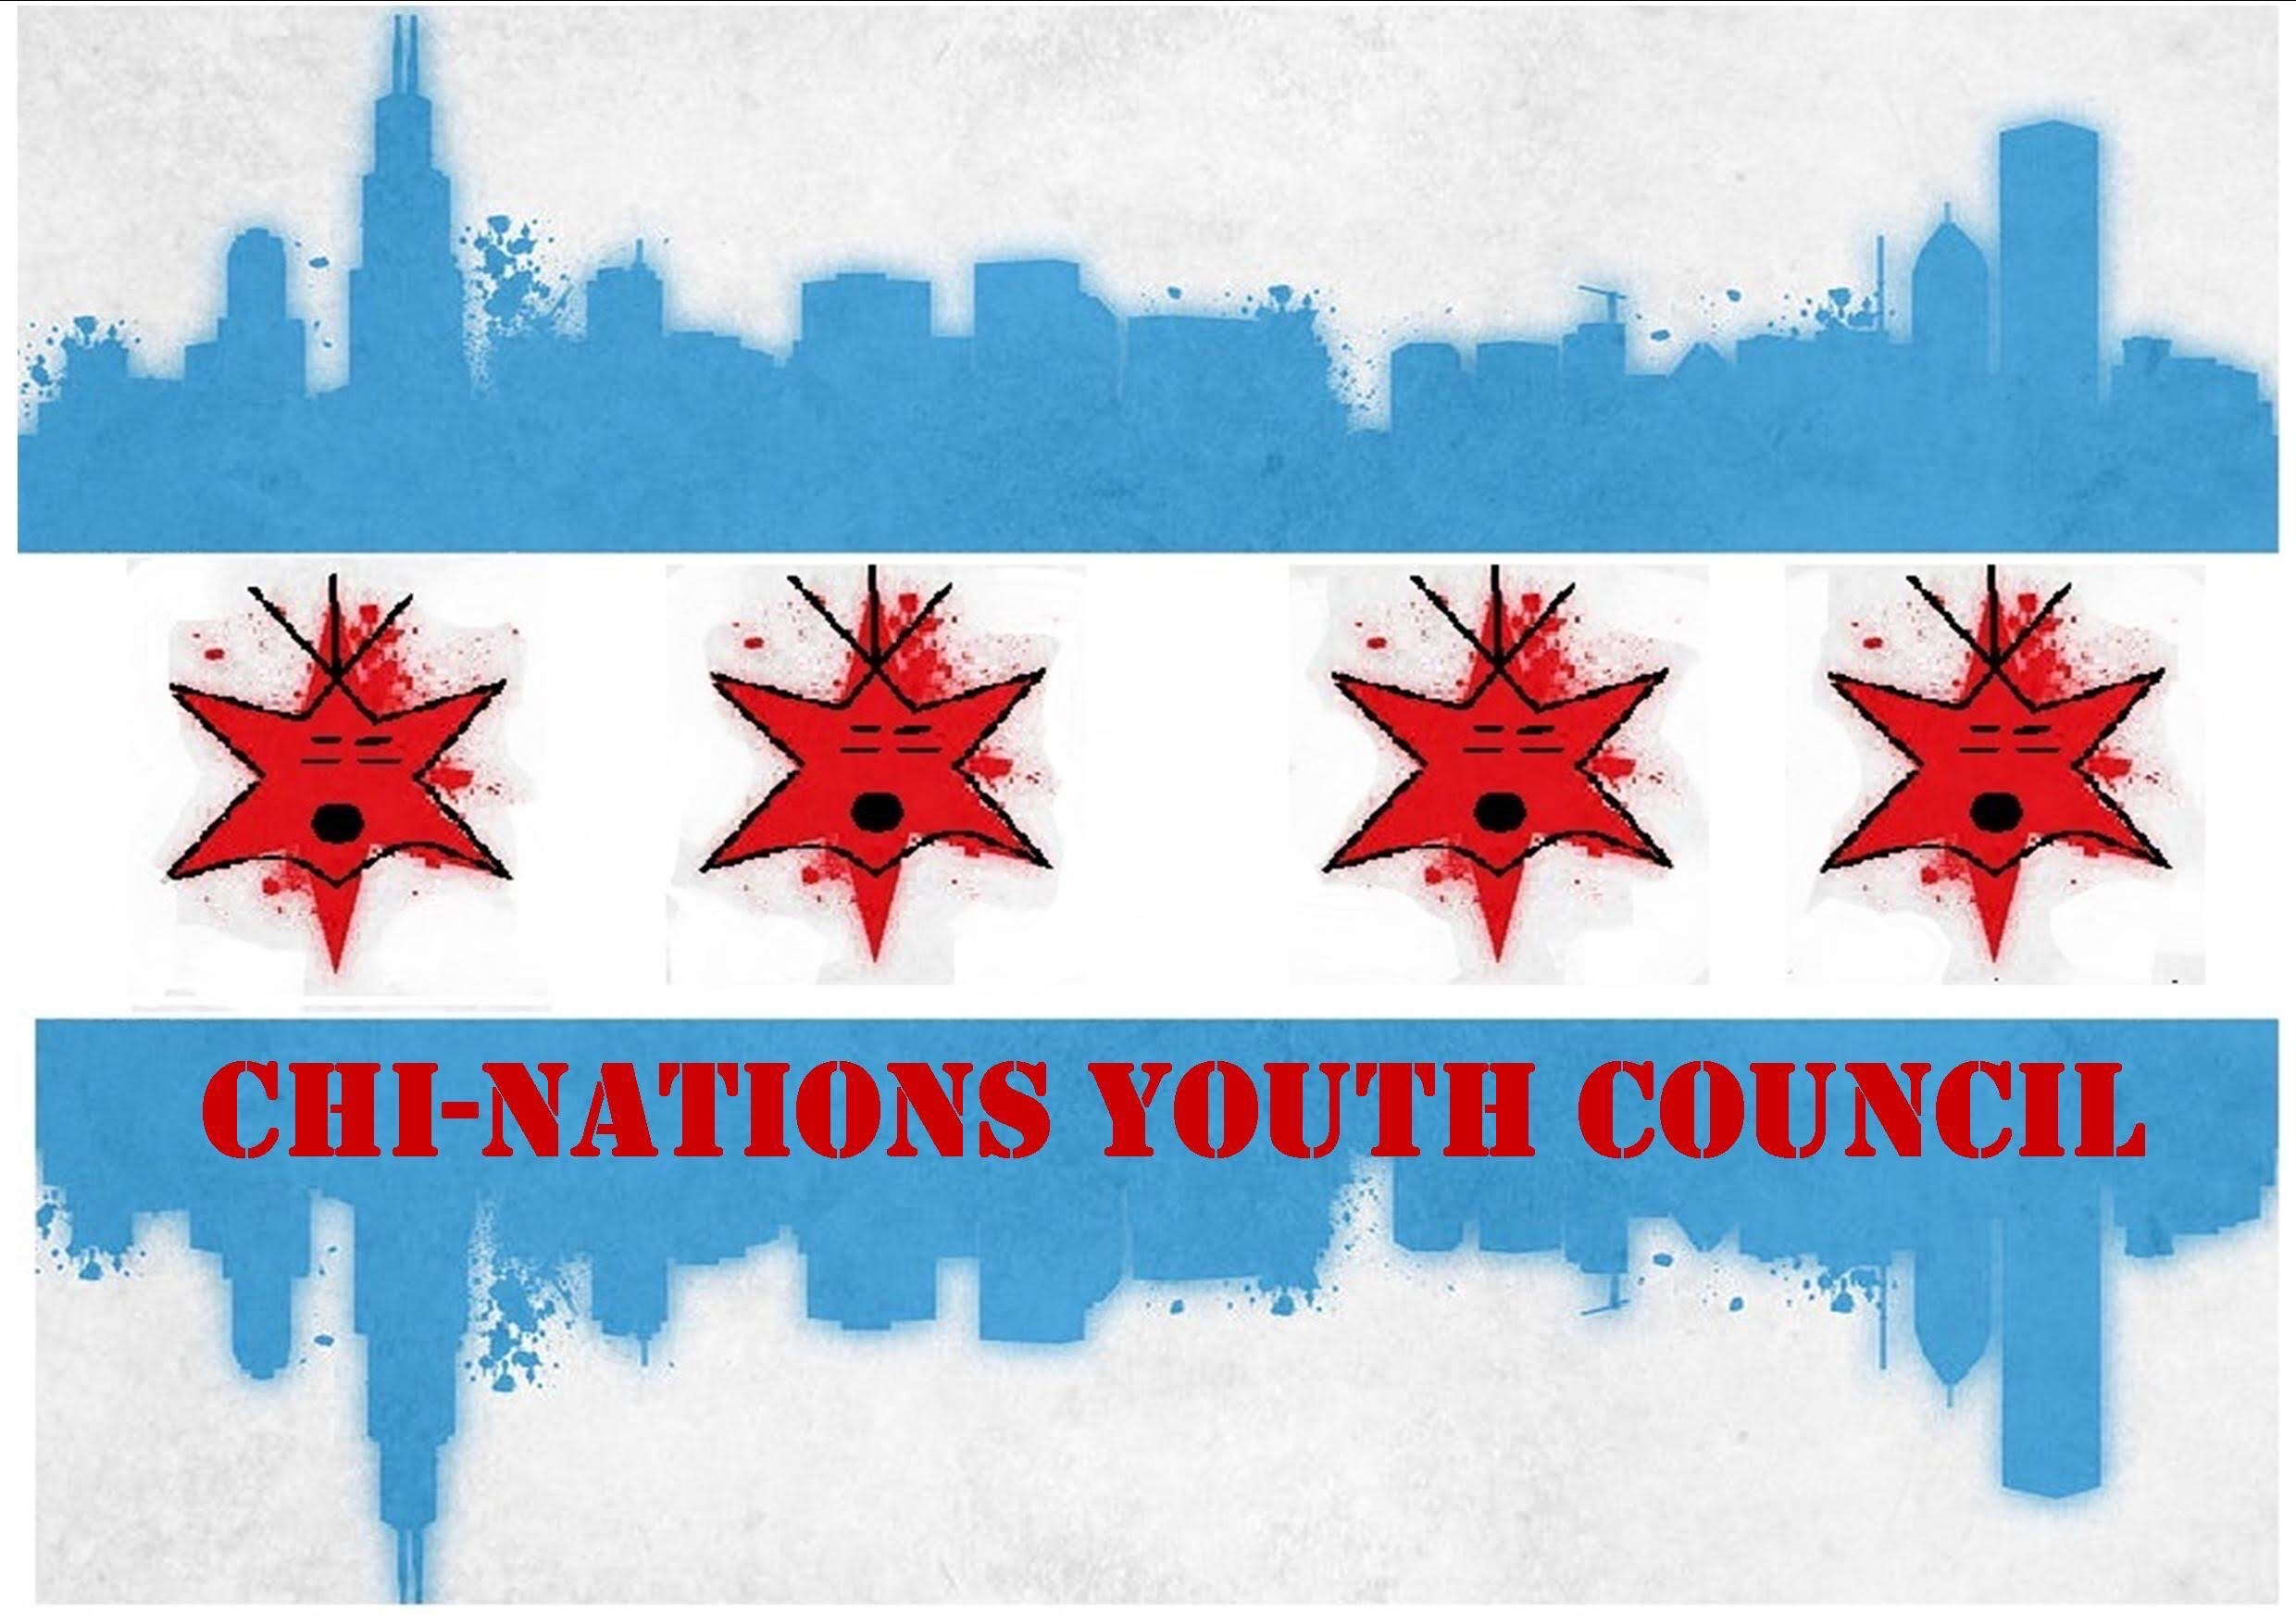 Chi-Nations Youth Council logo